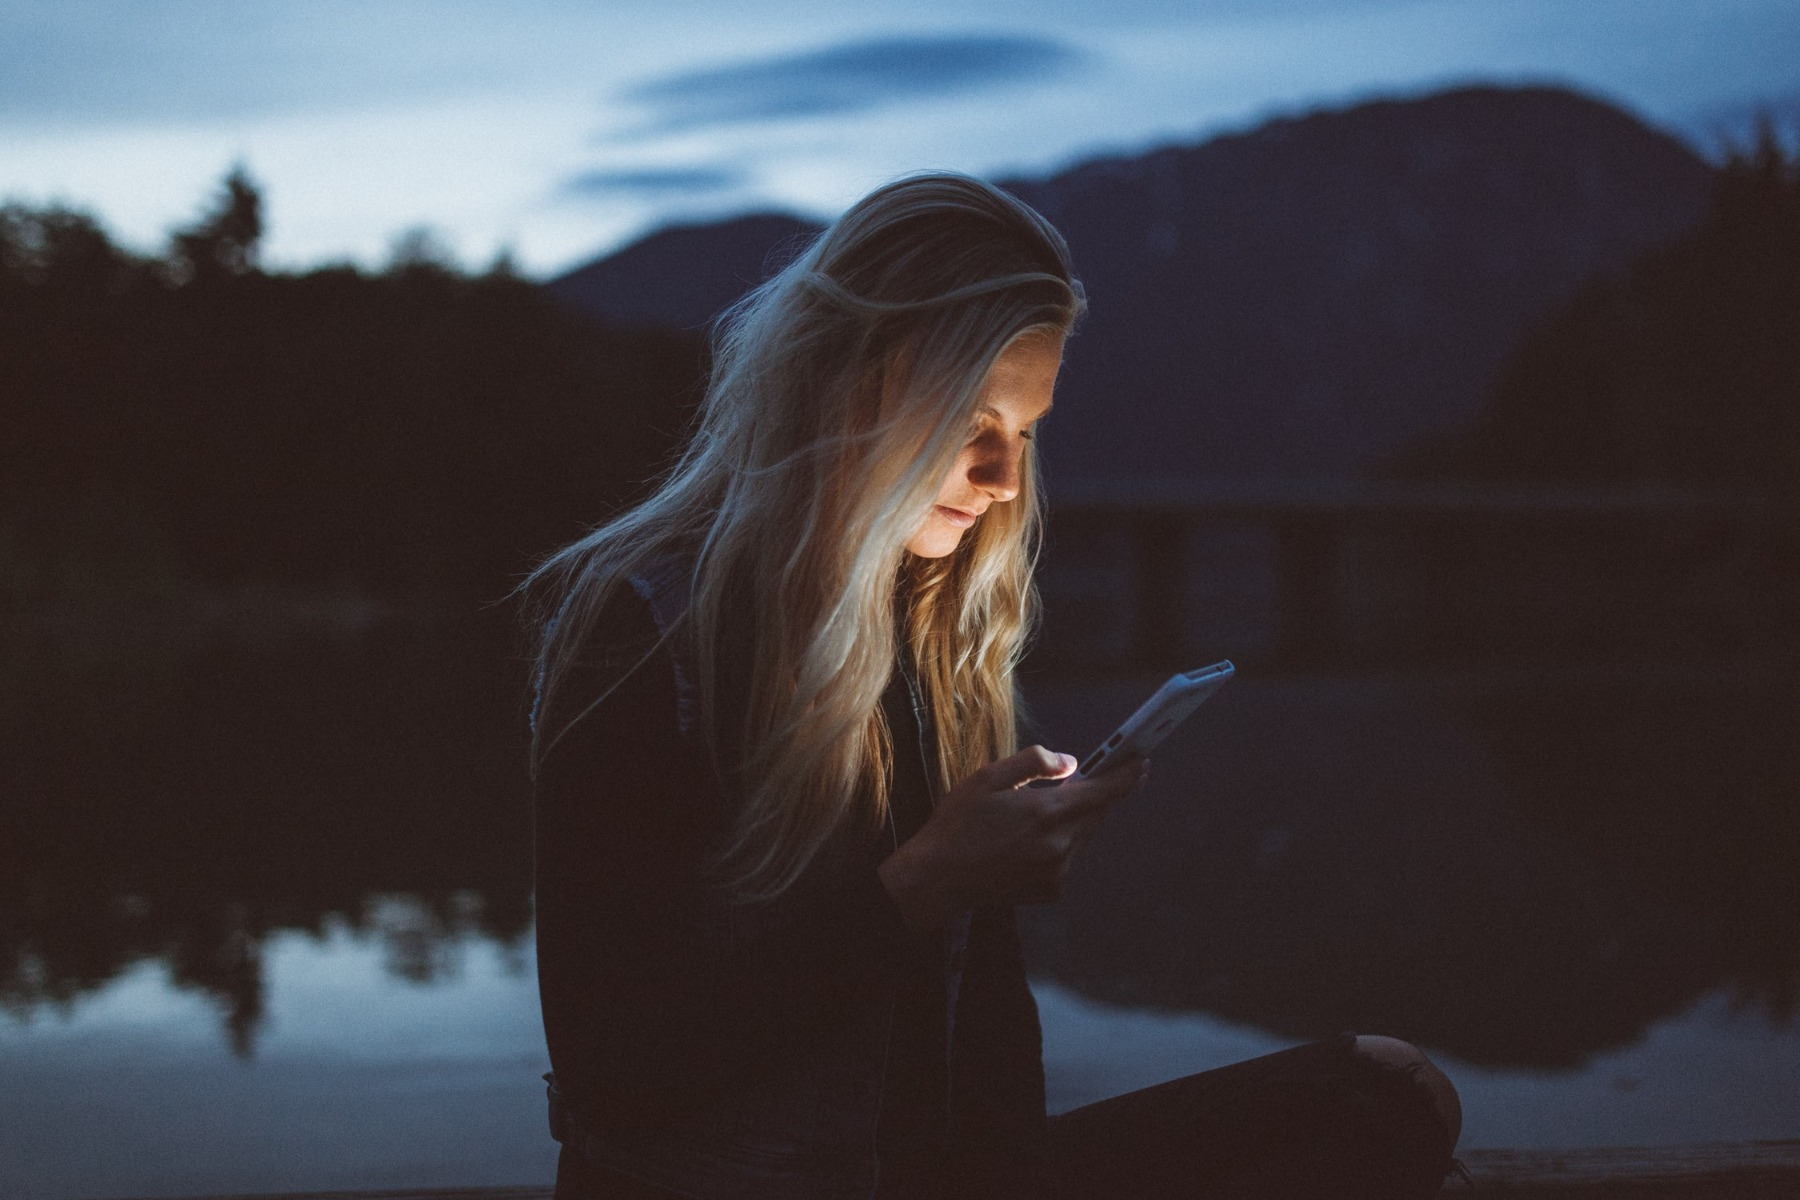 A woman using her phone at night